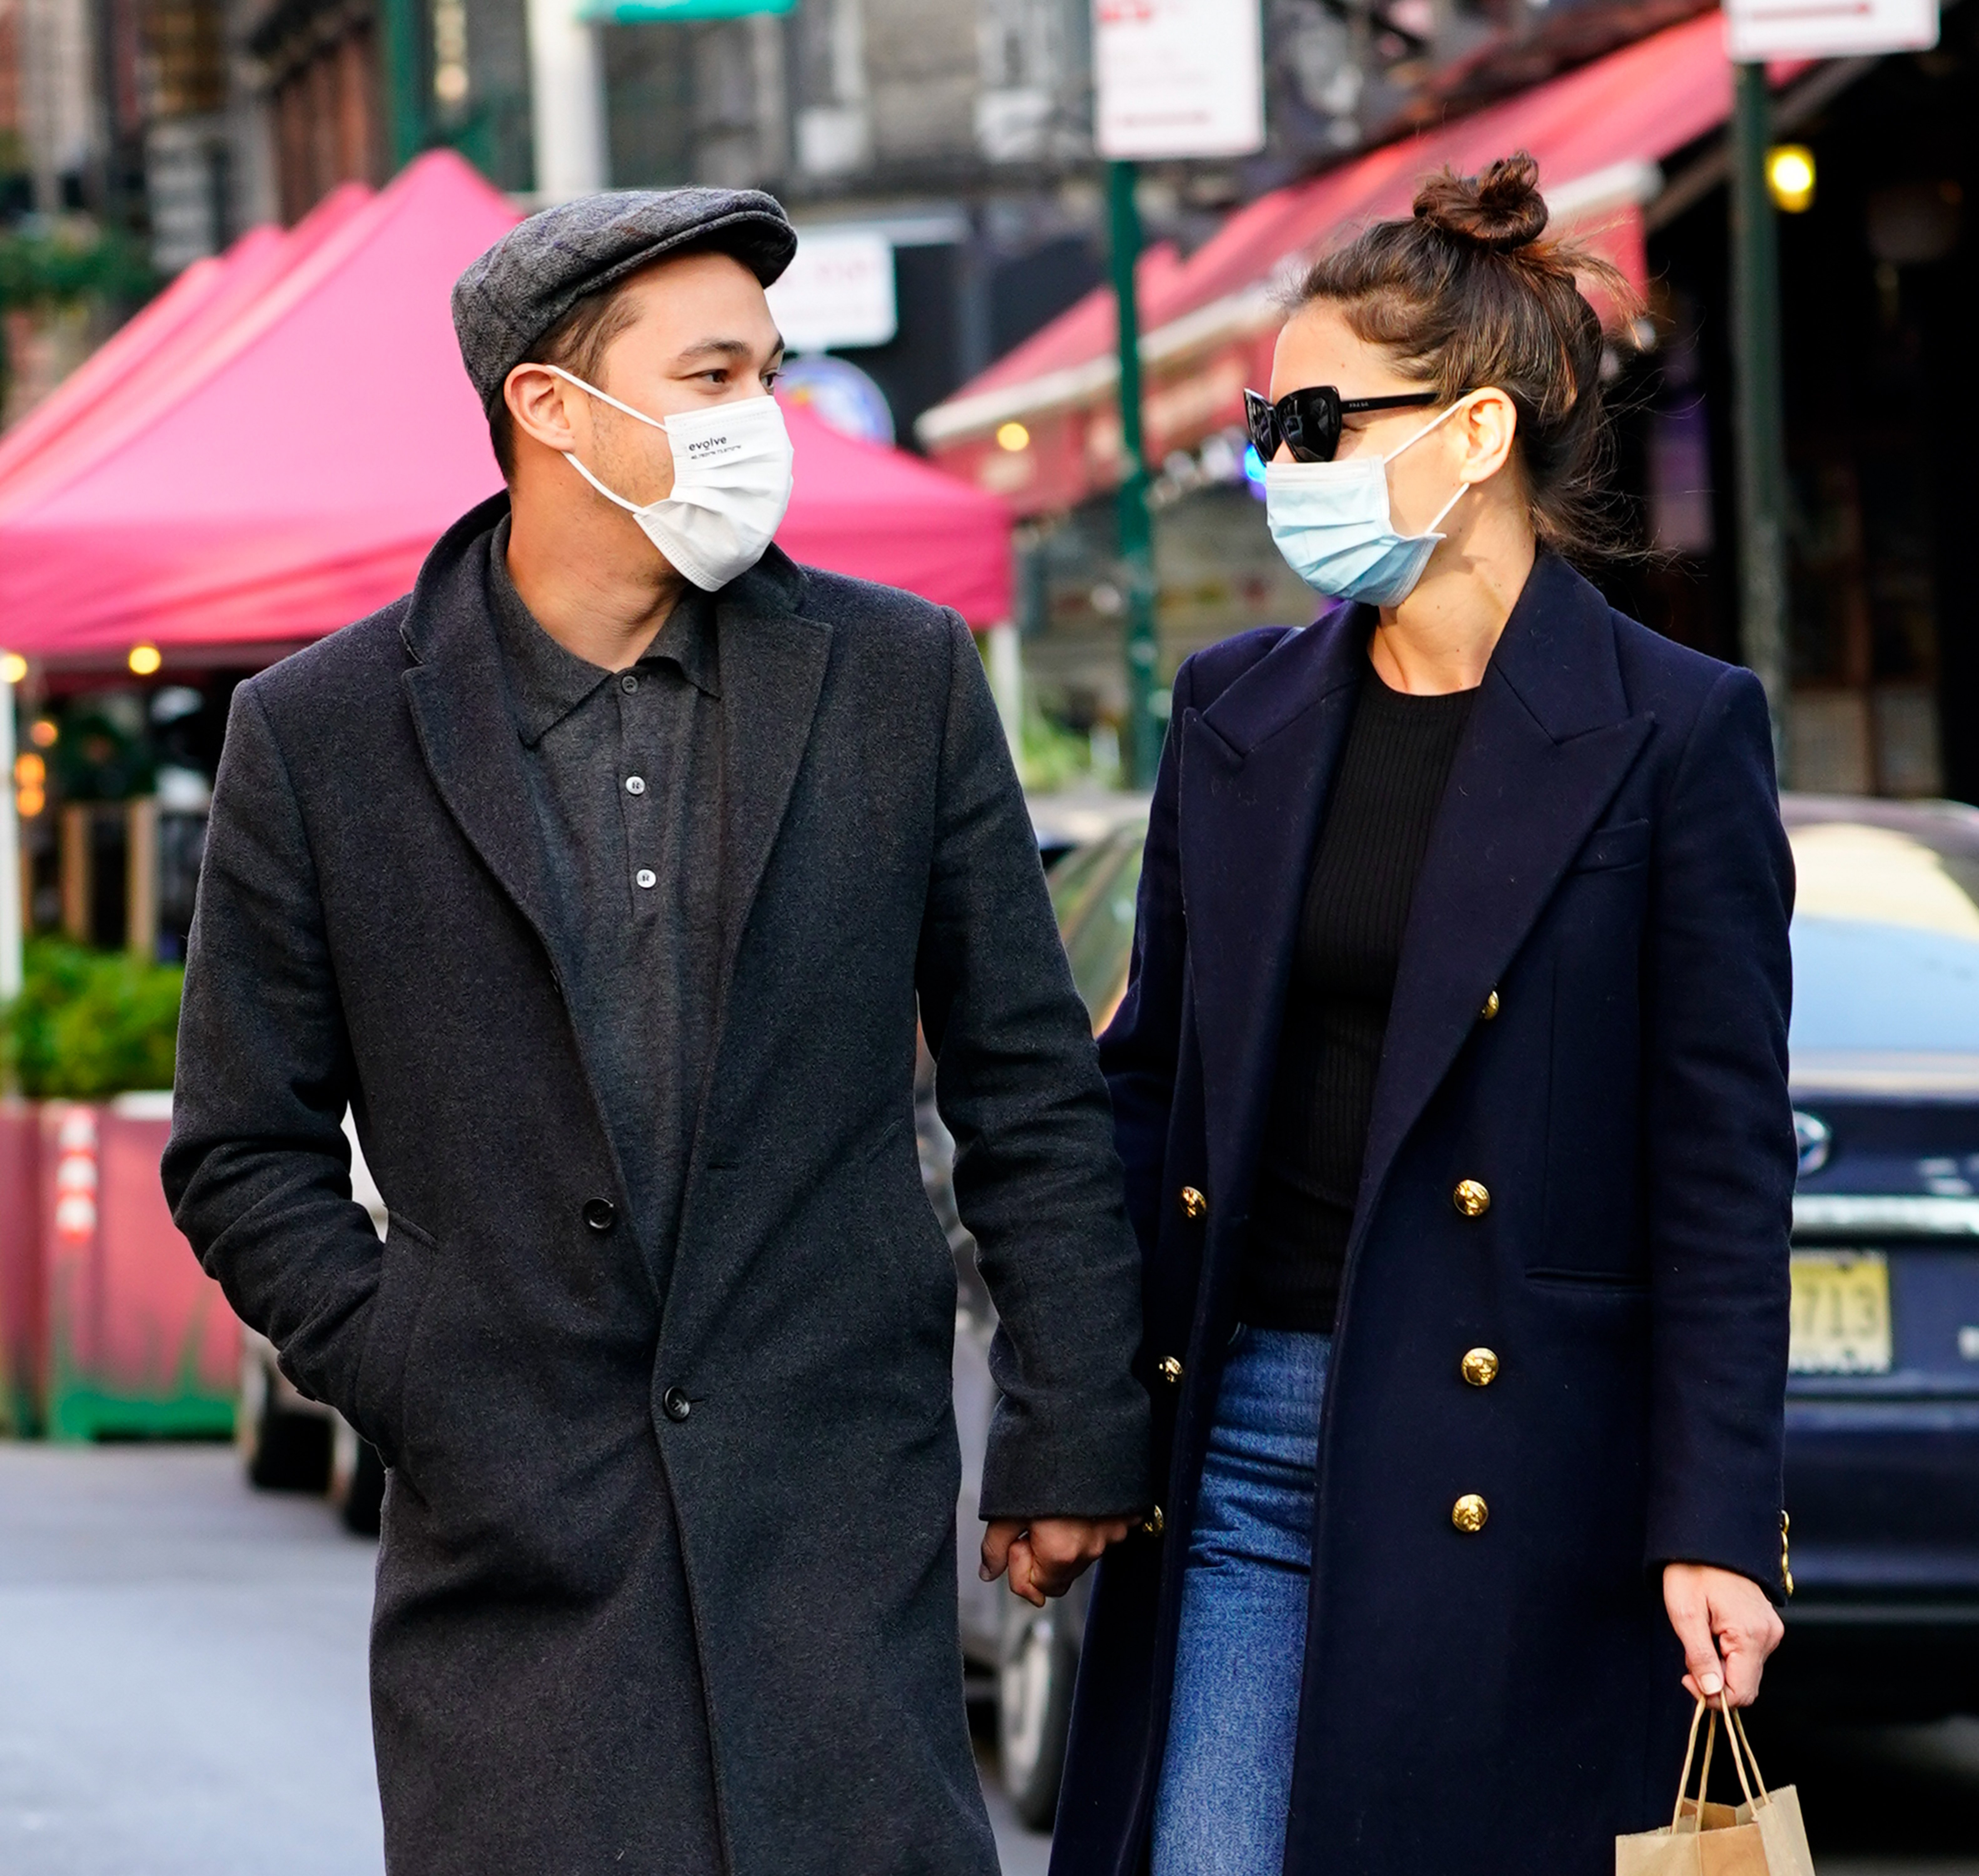 Katie Holmes and Emilio Vitolo Jr. seen on September 22, 2020 in New York City | Photo: Getty Images